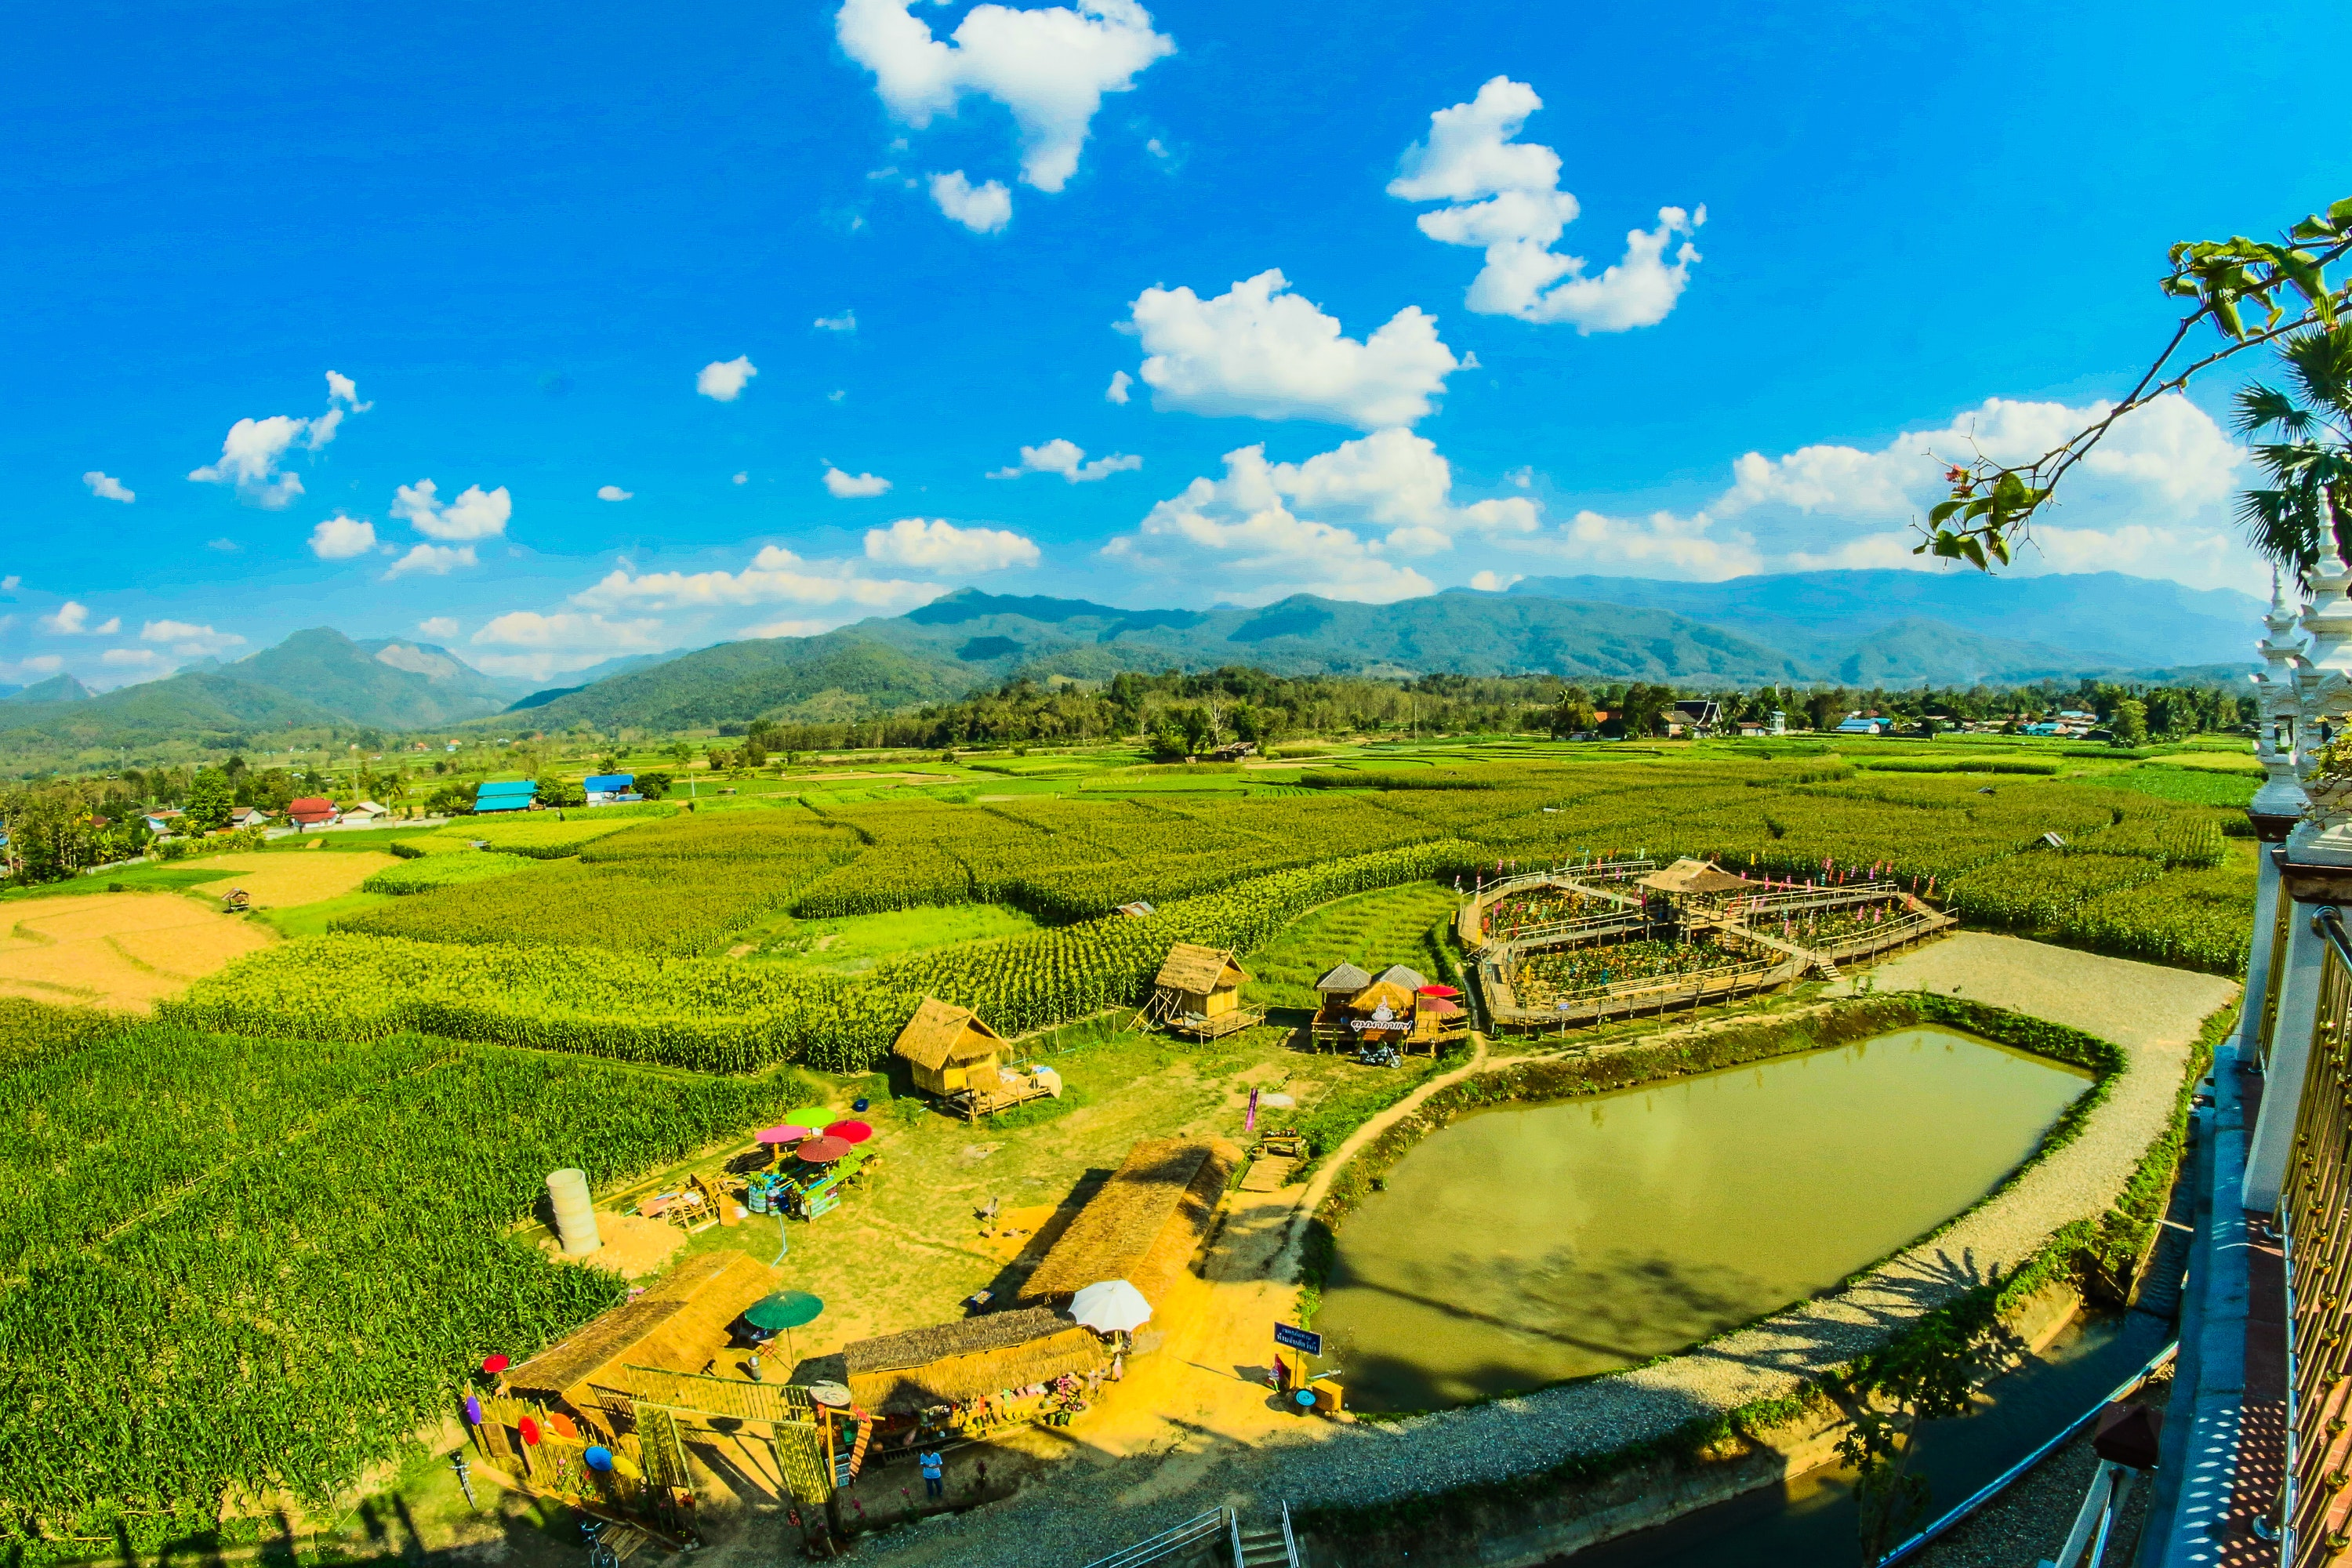 Green Rice Fields, Agricultural, Plants, Landscape, Mountains, HQ Photo